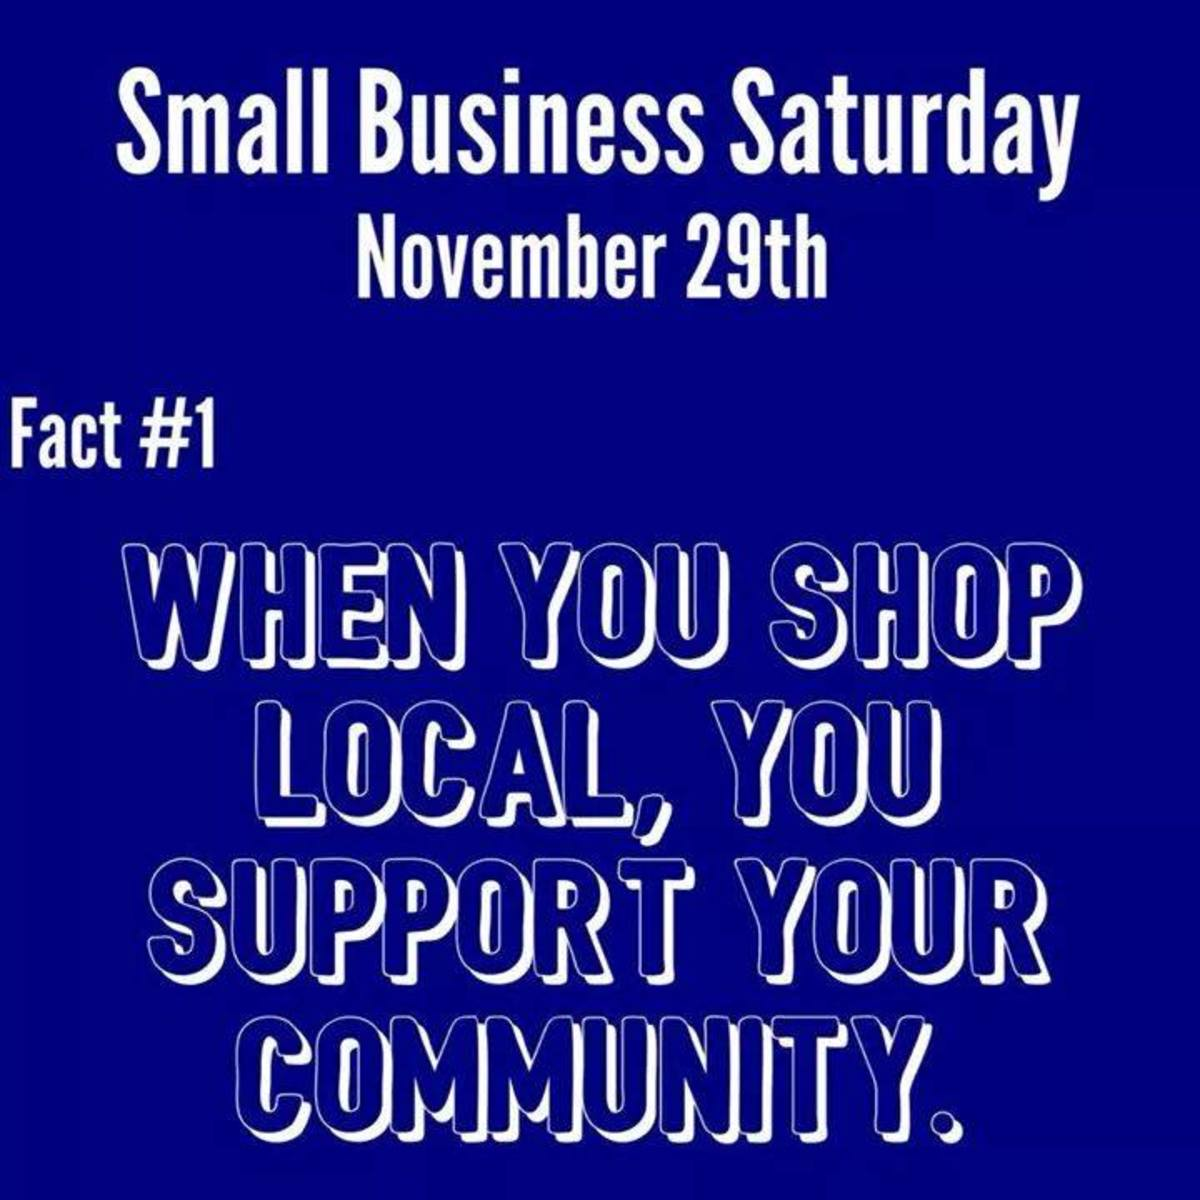 Look for and support the small businesses in your area.